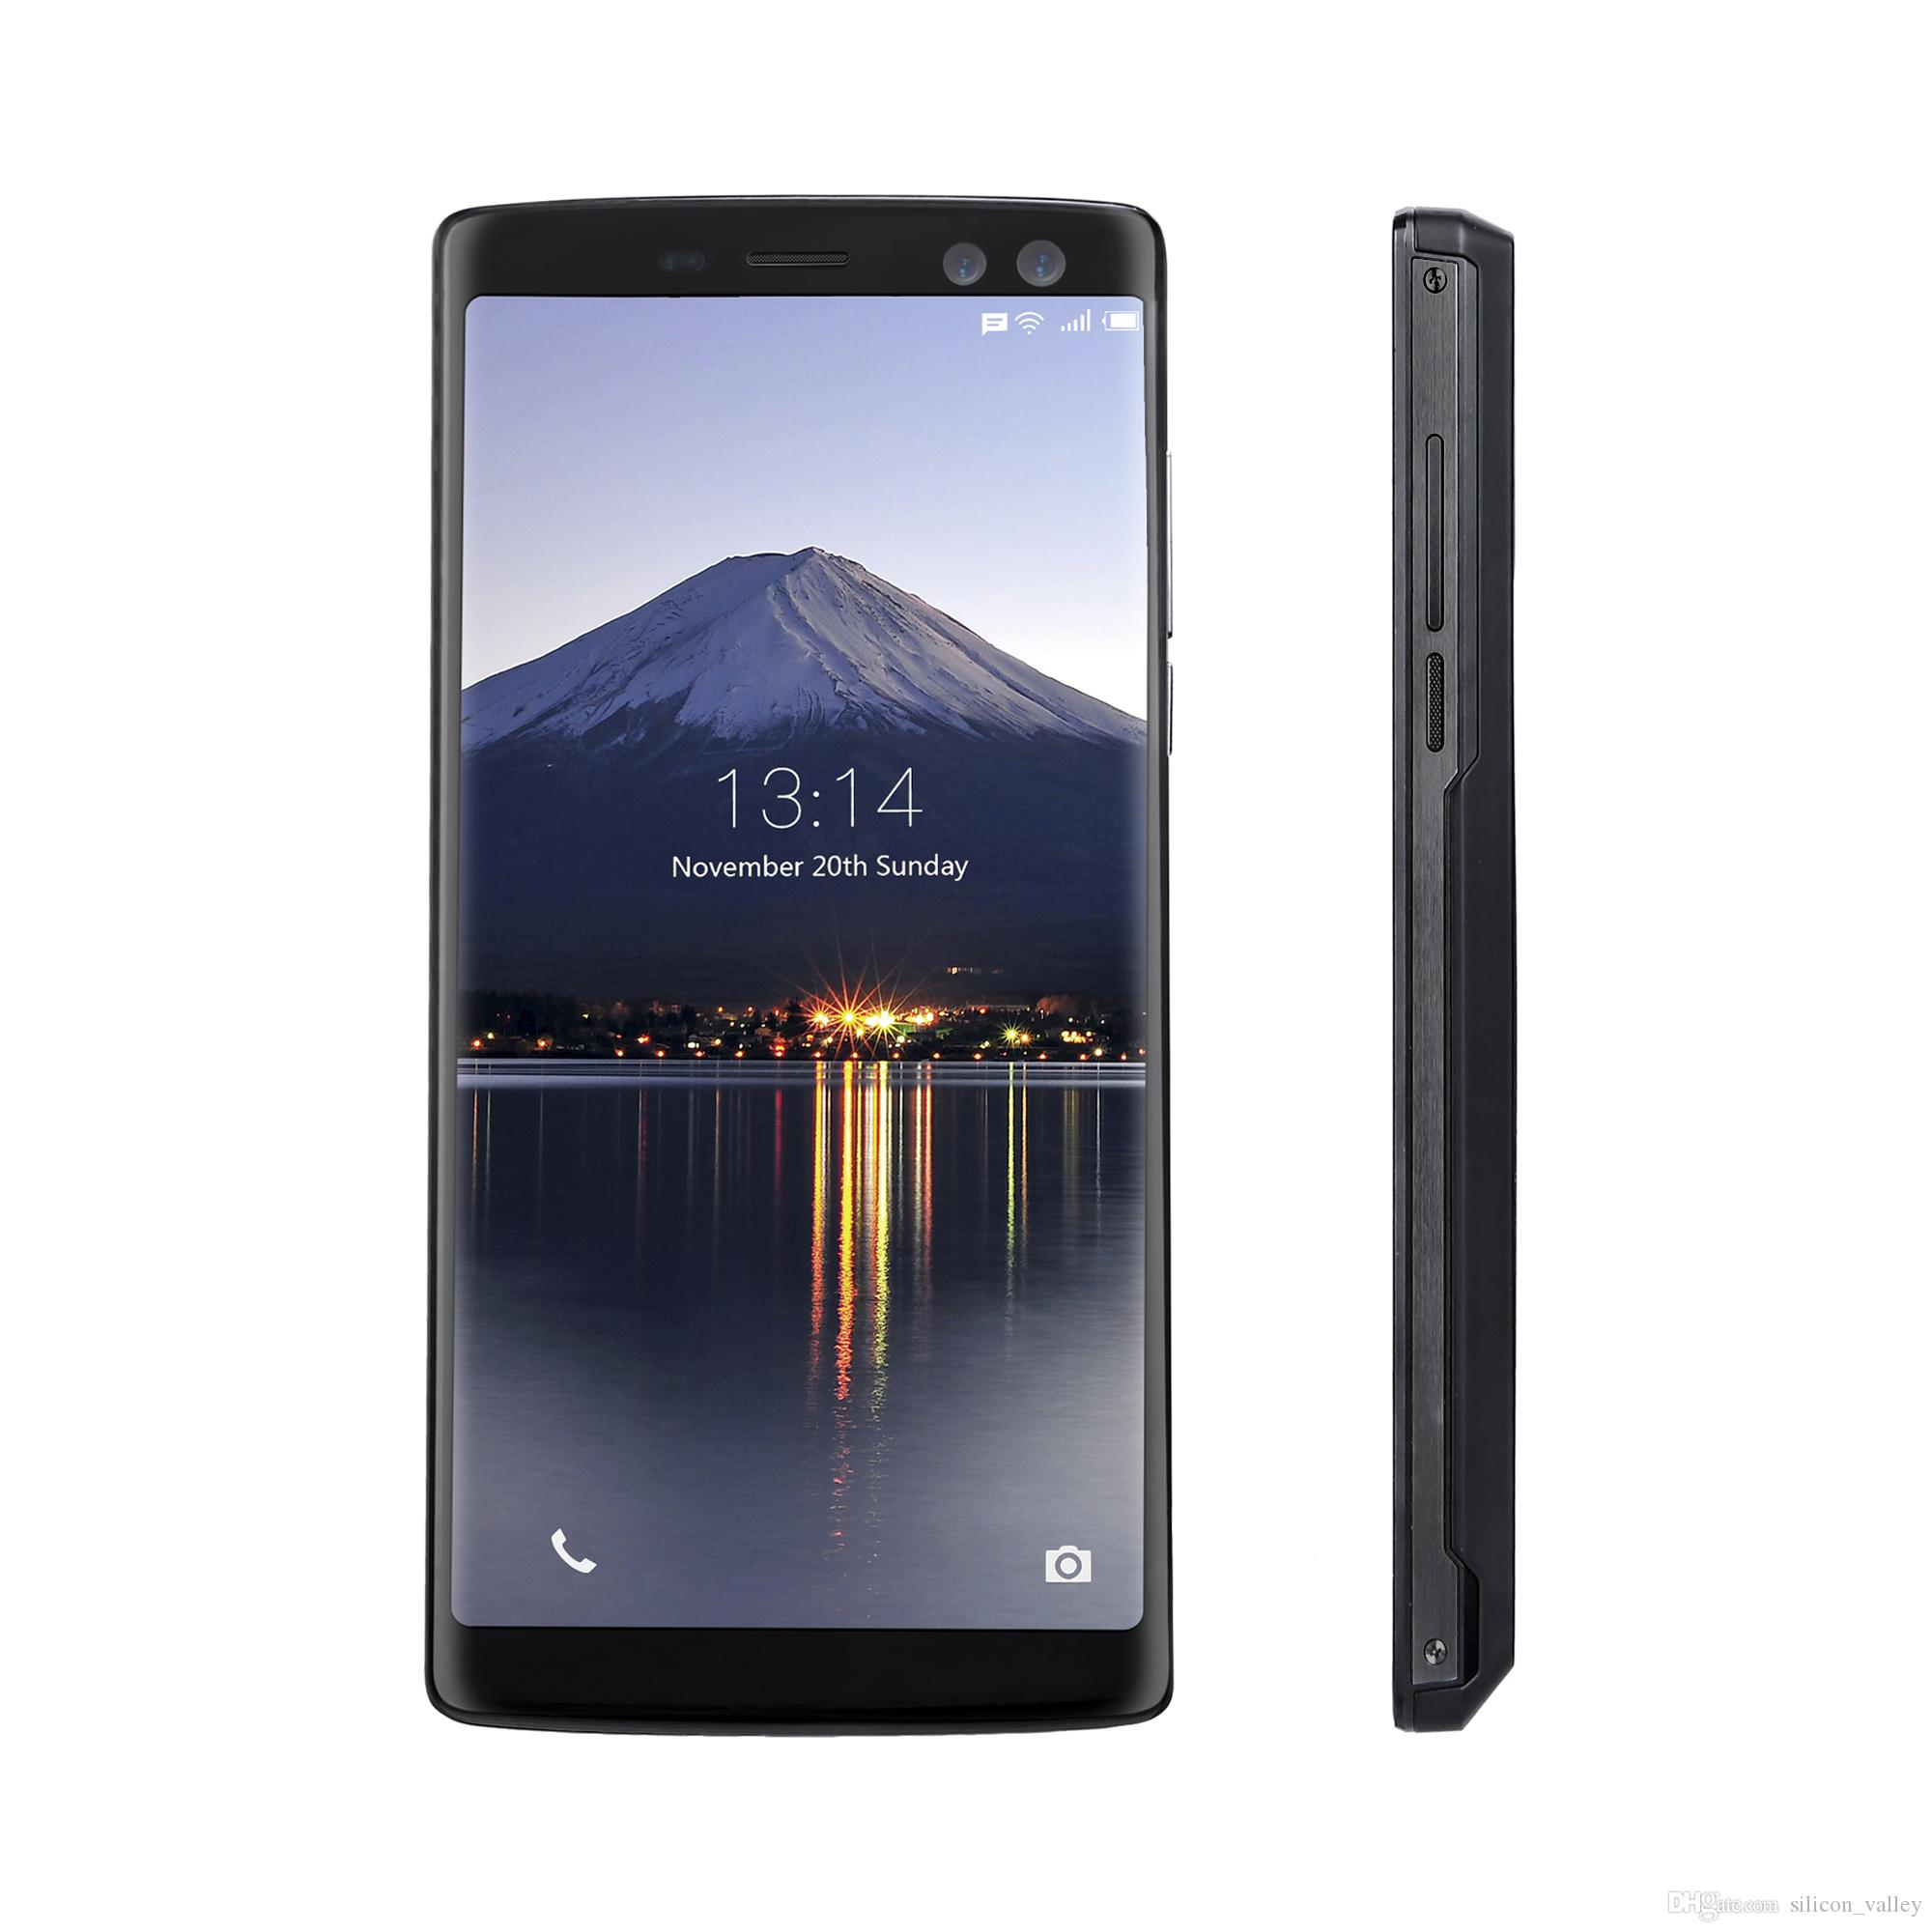 Best Doogee Bl Pro Octacore 6gb Ram 64gb Rom Android 7 0 Fingerprint 4g Dual Sim 6 0 Cell Phone Smartphone Unlock Android Phone Waterproof Cell Phone